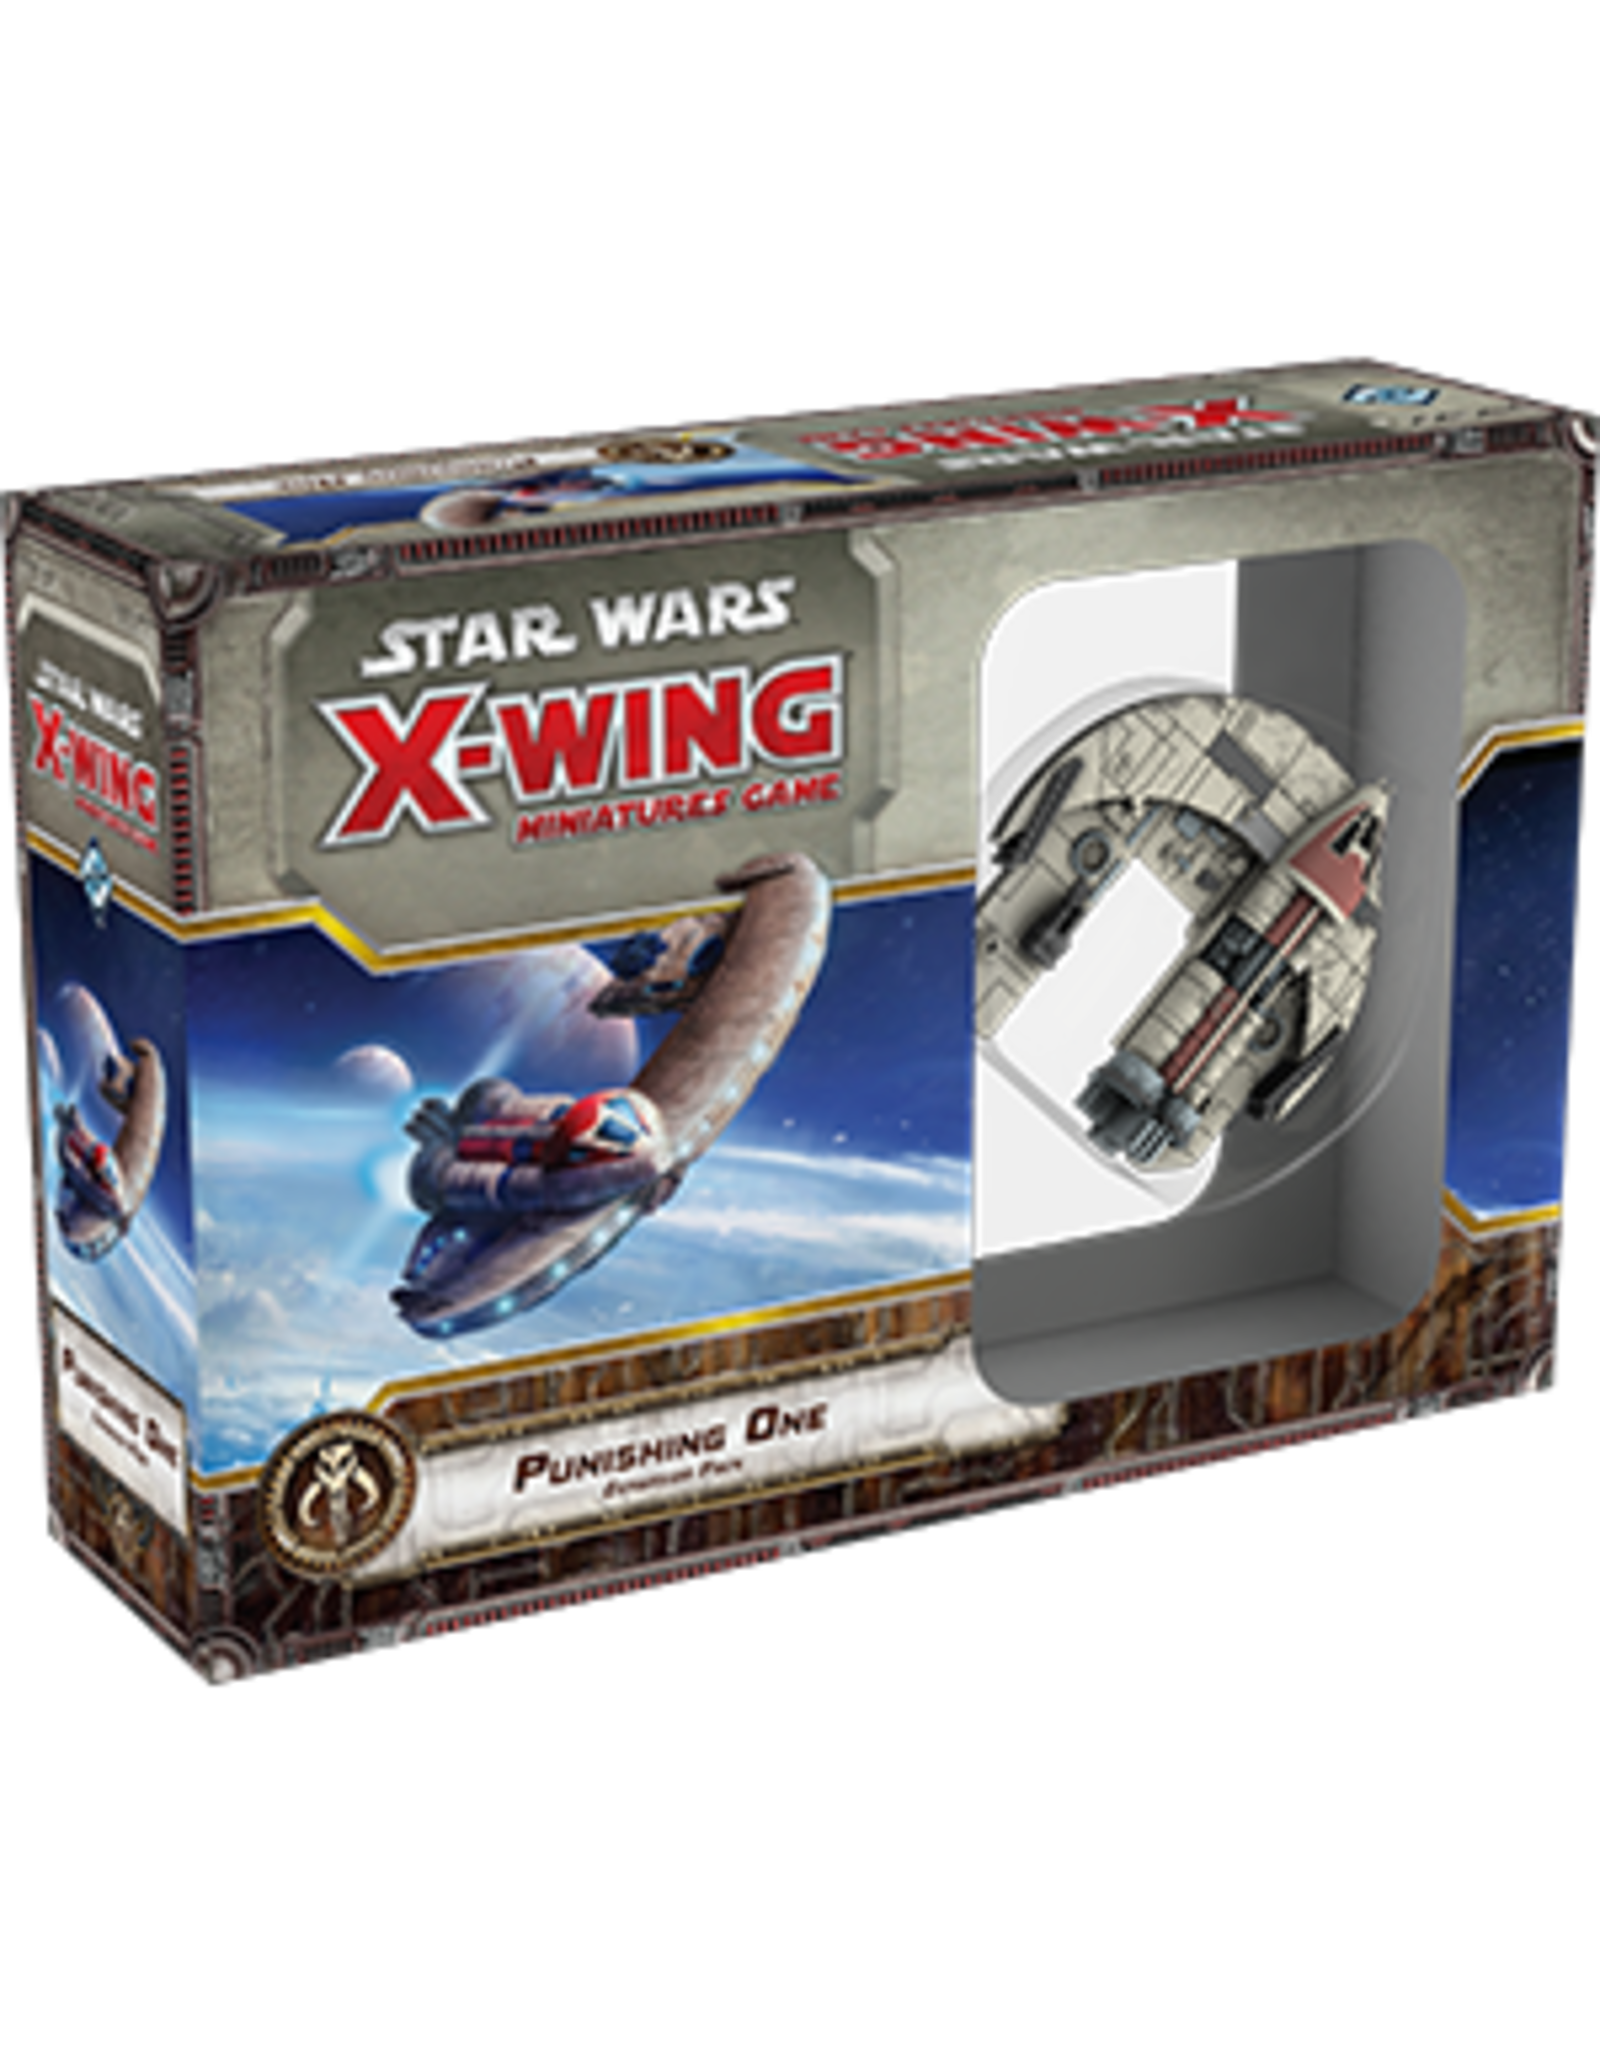 Fantasy Flight Games Star Wars X-Wing: Punishing One Expansion Pack 1st ed